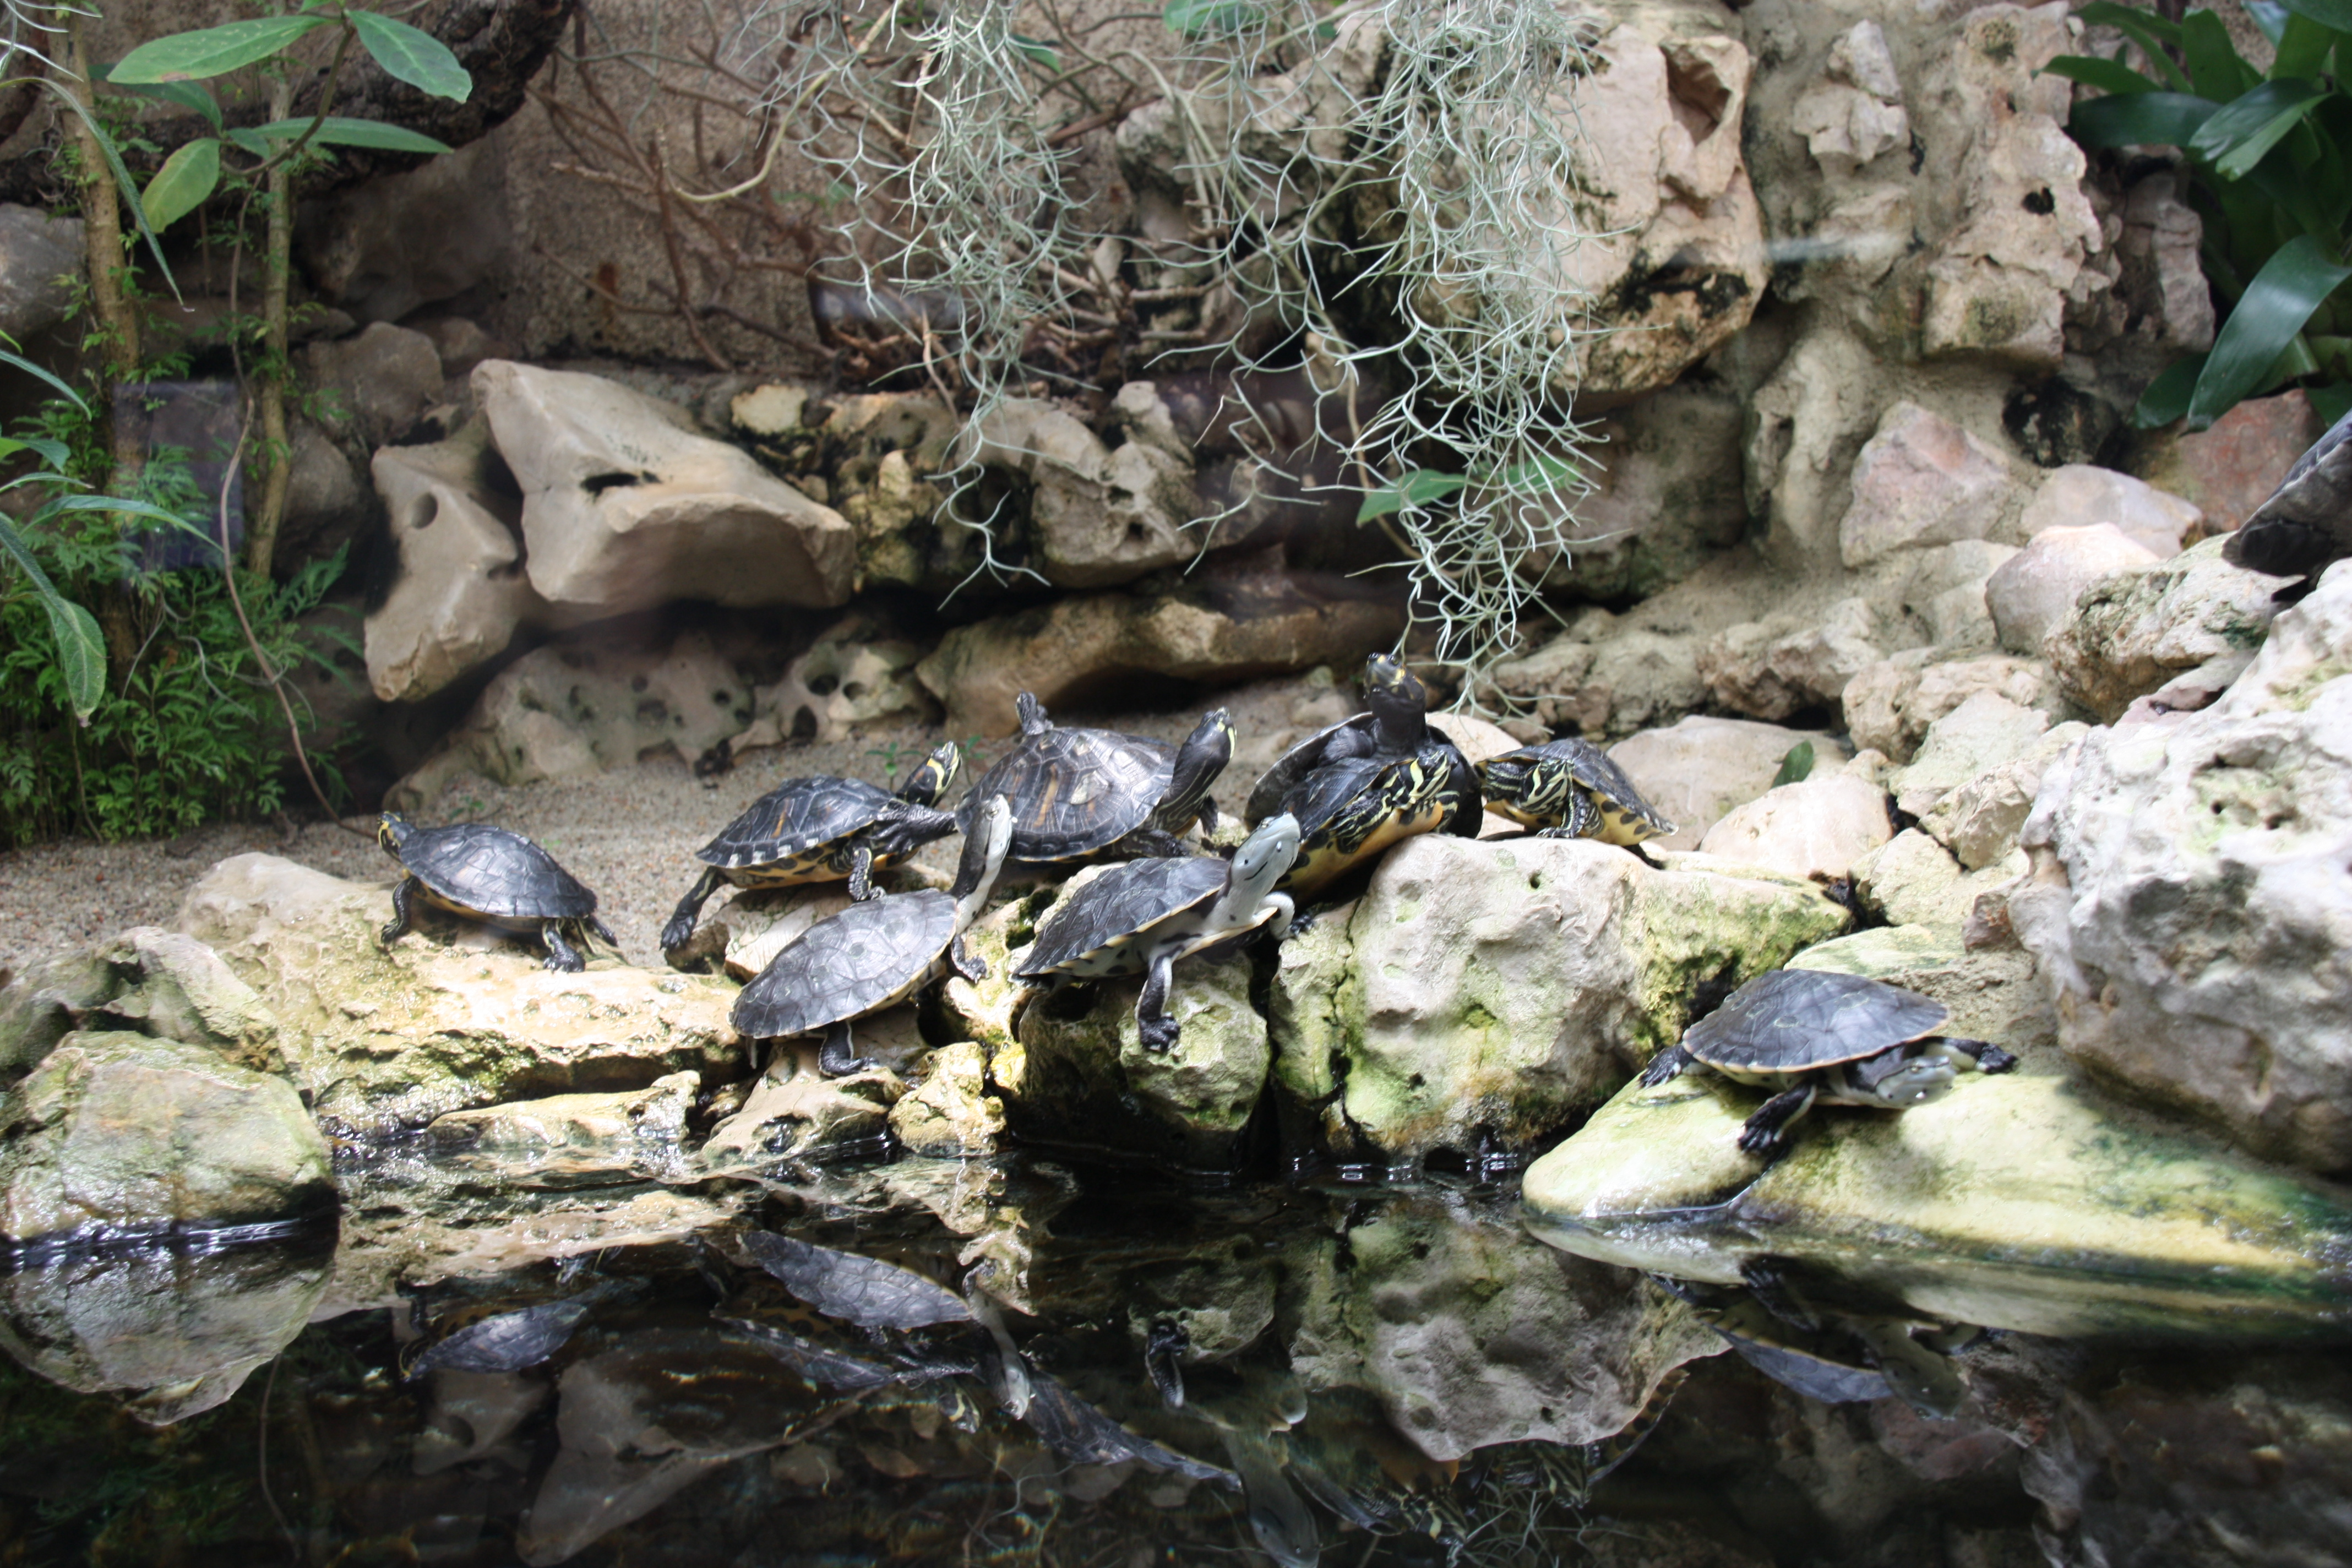 Turtles photo